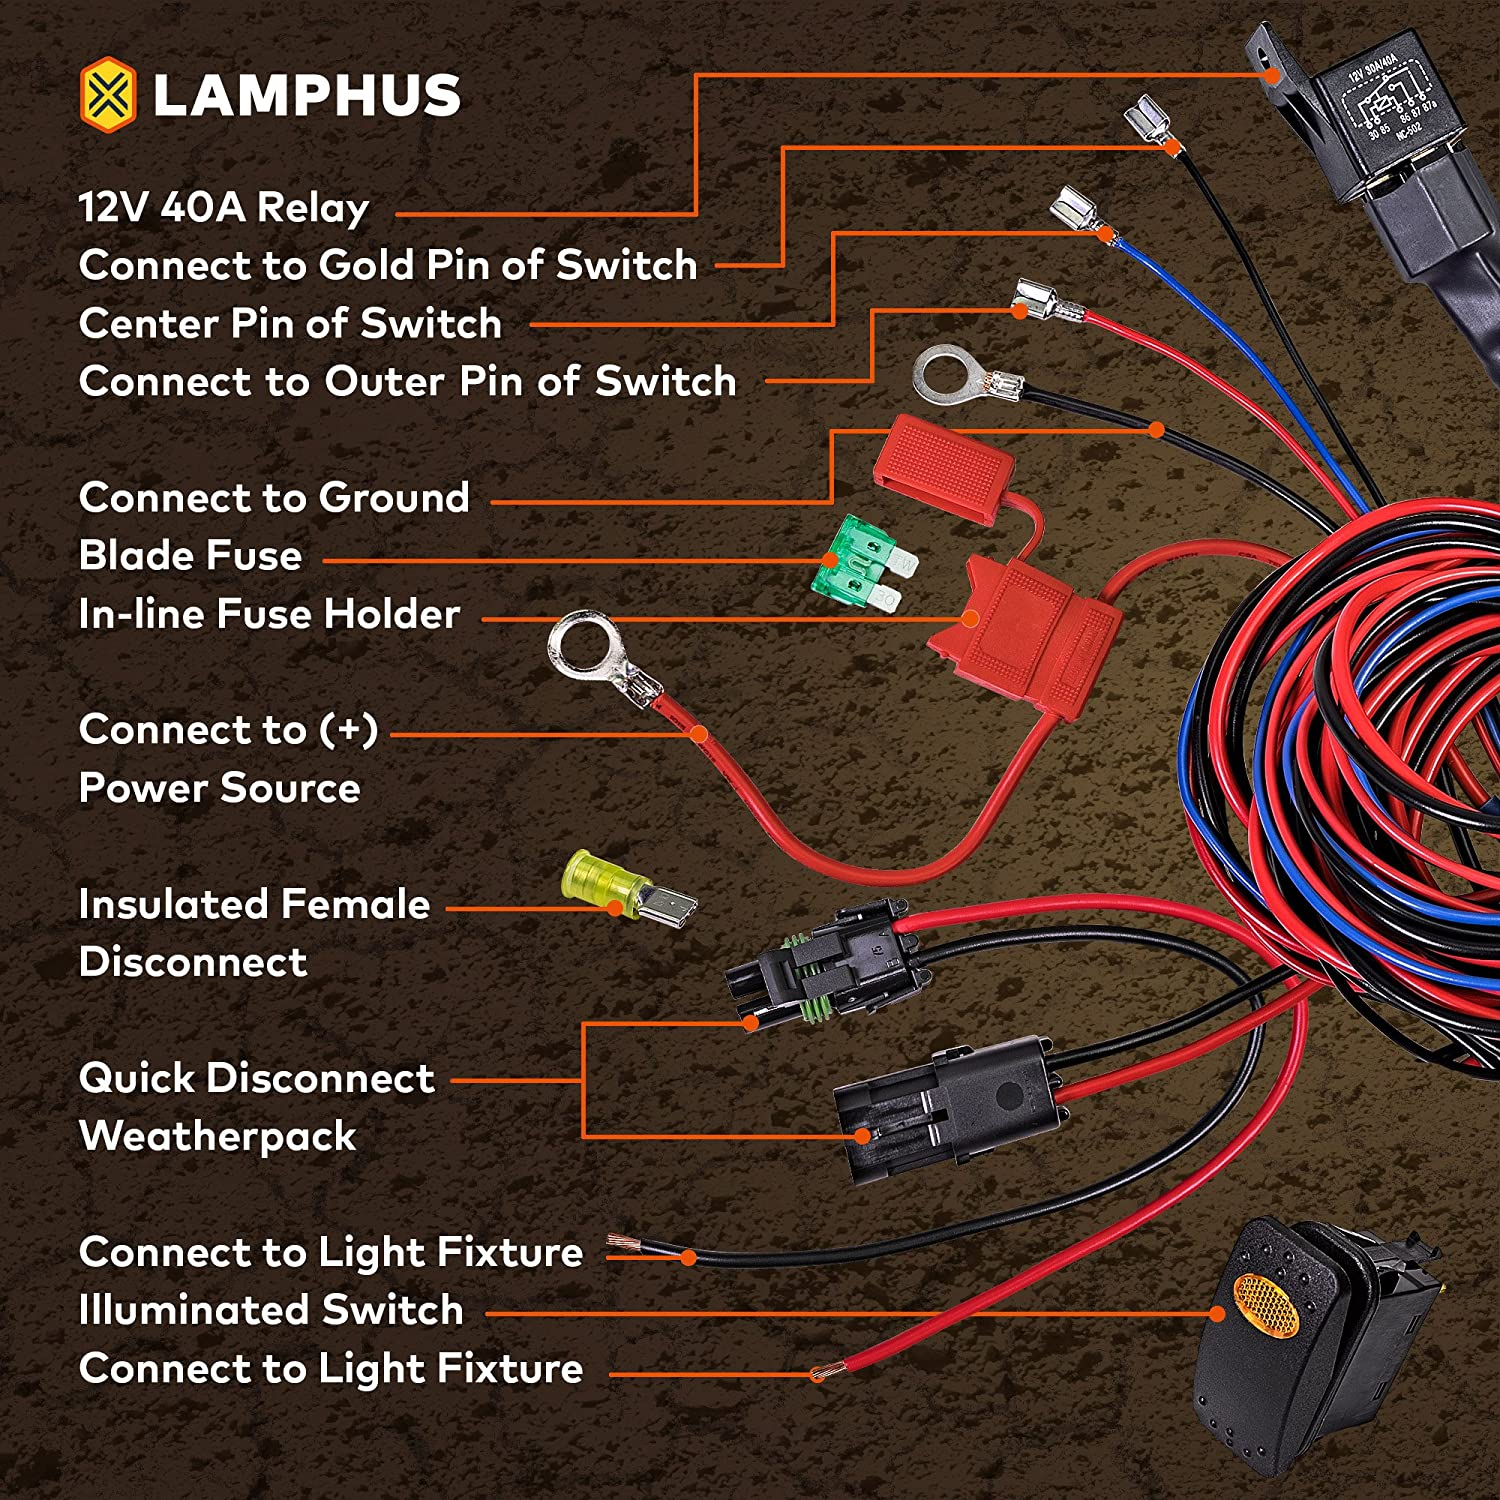 Lamphus 17 Off Road Atv Jeep Led Light Bar Wiring Electrical Fixture Harness Kit Made In Usa Hd 12awg Wire Ip65 Waterproof Rectangle Switch Heavy Duty